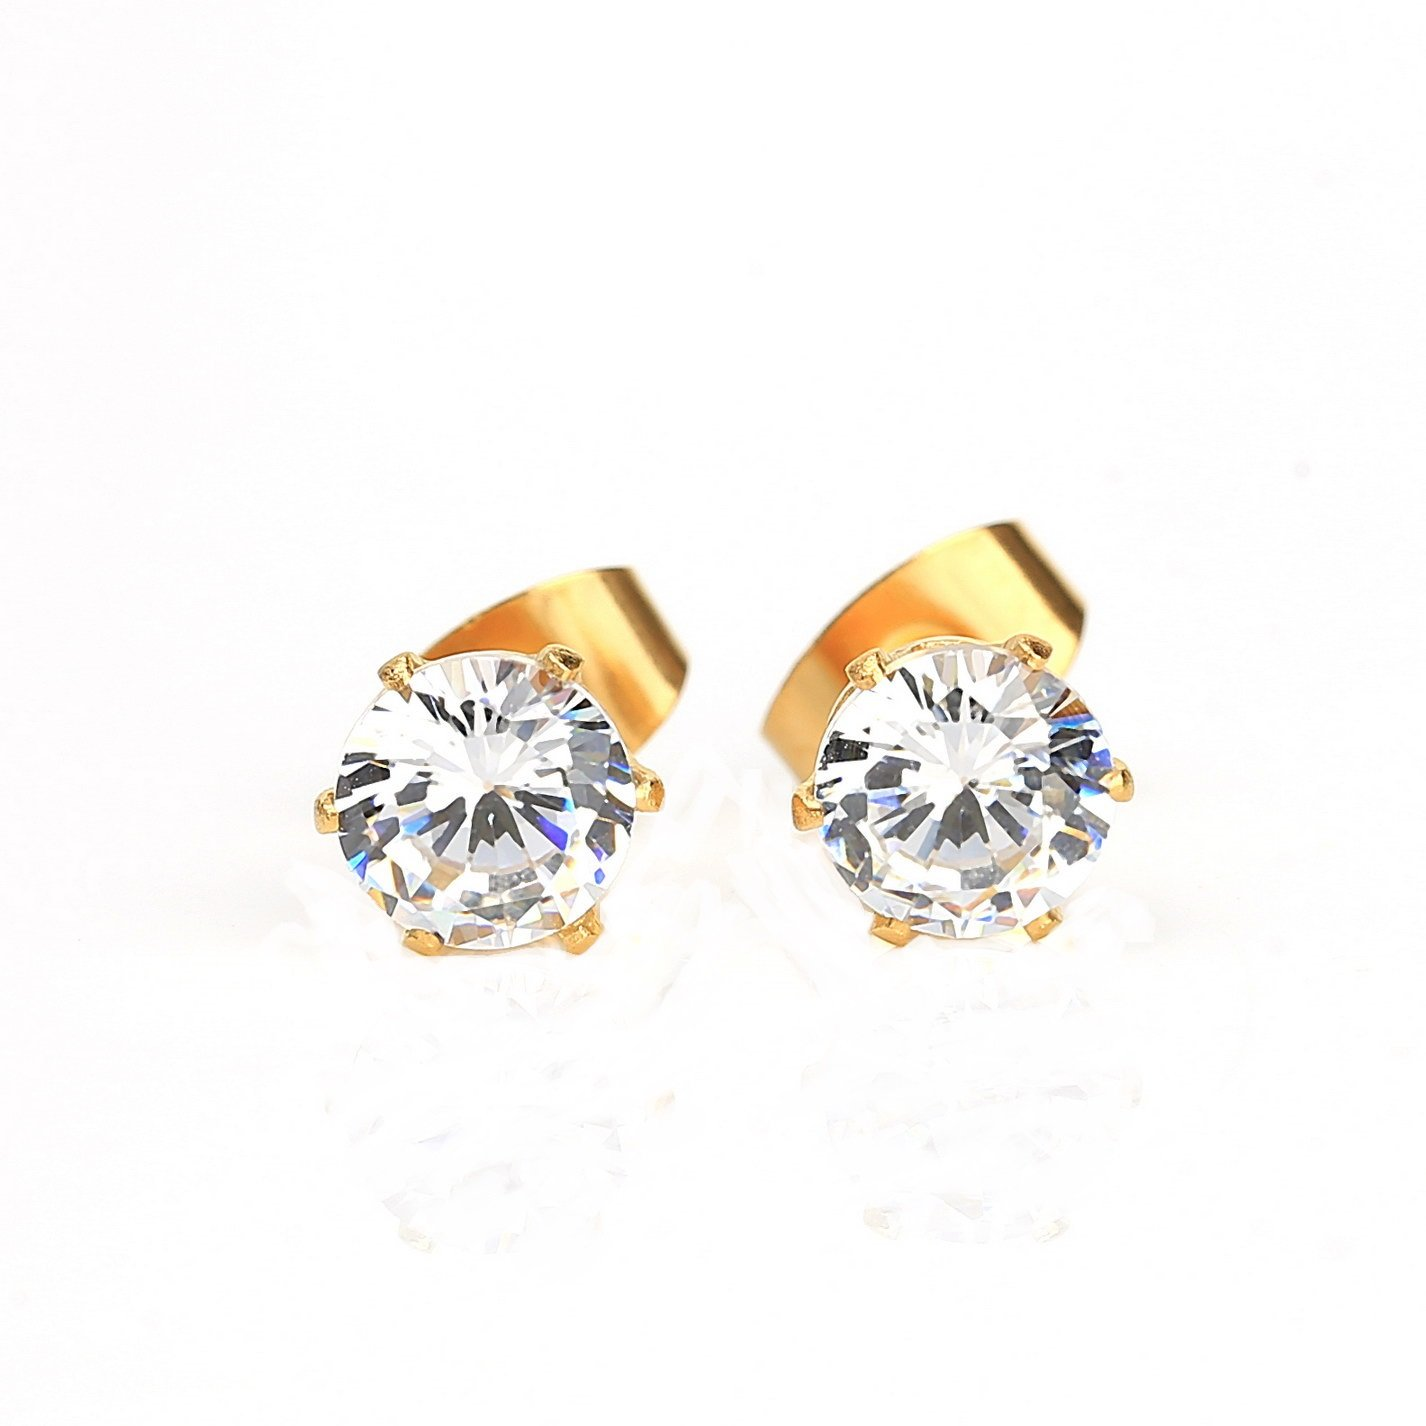 Striking Gold Tone Swarovski Style Stud Earrings, Approx. 3.5 Ct Total Weight (Comparable to Diamond Weight)